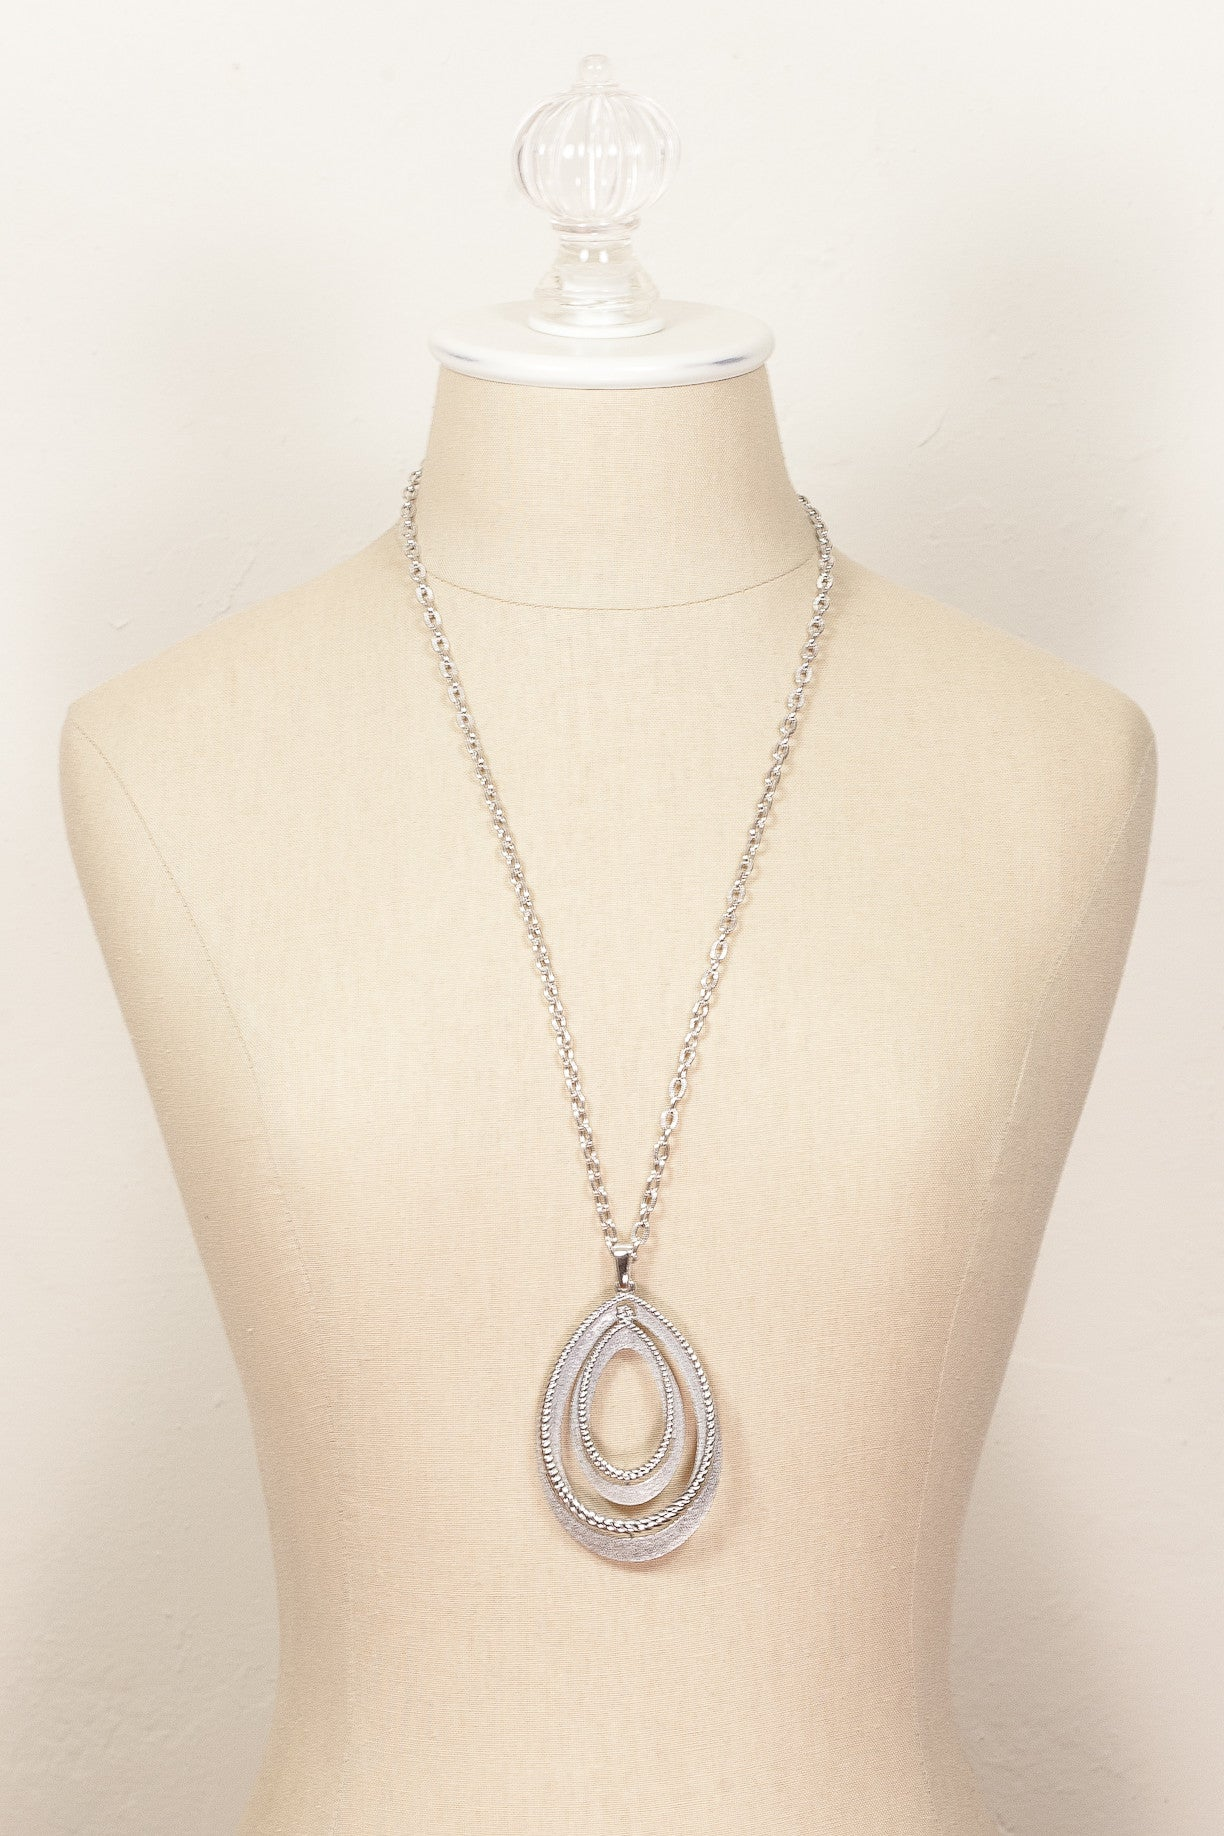 70's__Trifari__Silver Pendant Necklace